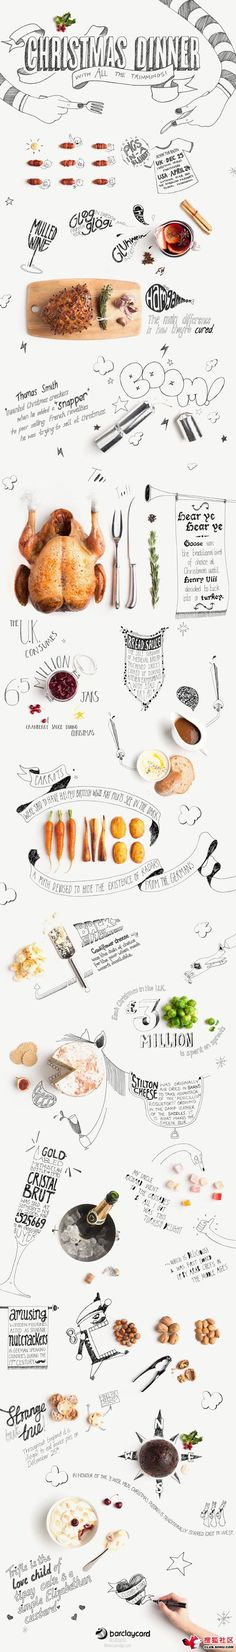 "Great idea to mix hand drawn or vector elements with images of food. Inspiration for Turkey Day? ""Planning a Feast?"""